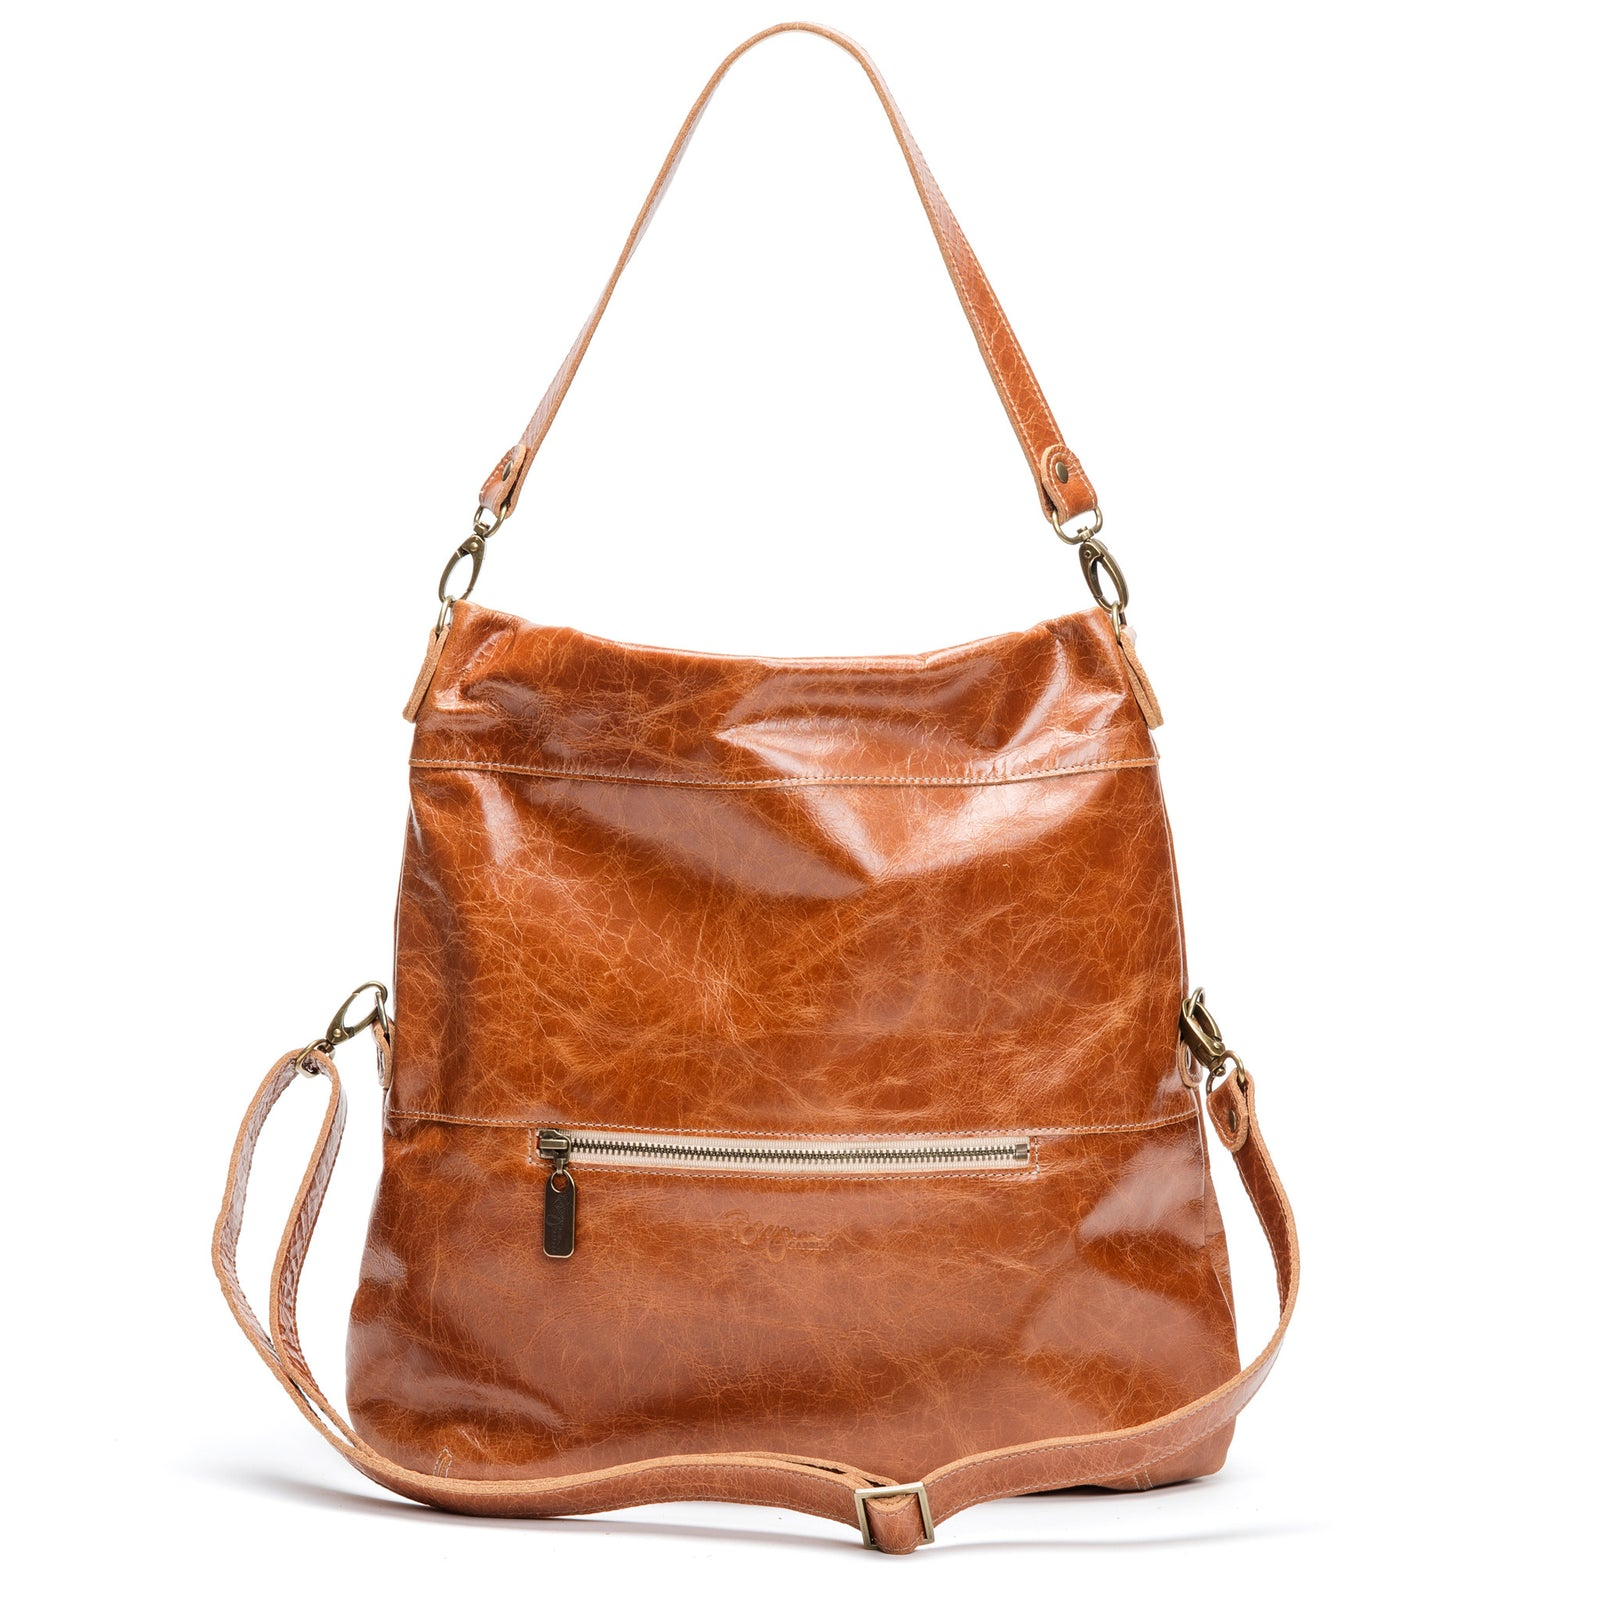 Lauren Crossbody - Canyon - Brynn Capella, Large Crossbody